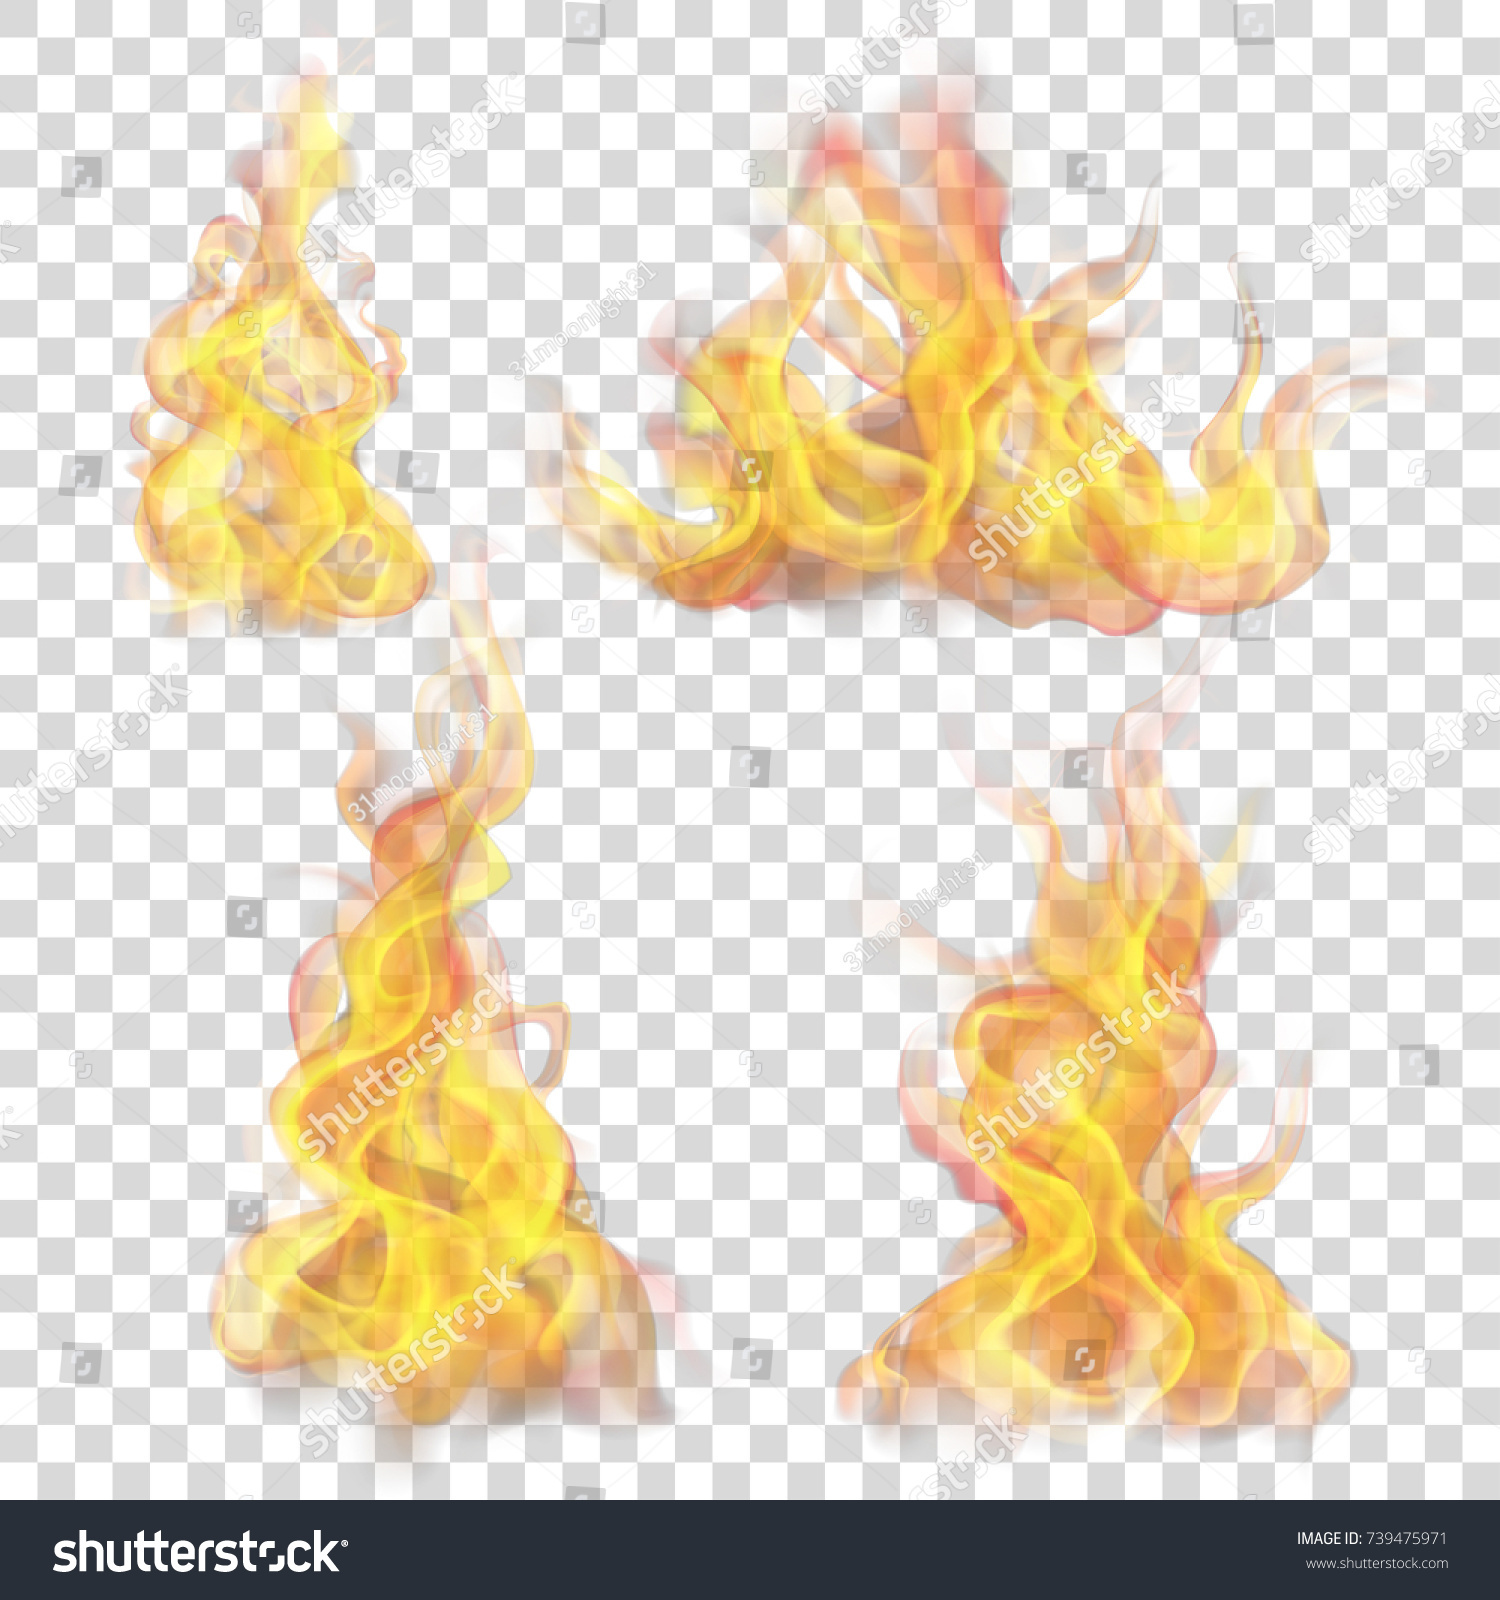 Set Fire Flame On Transparent Background Stock Vector Royalty Free 739475971 Fire is an event, not a thing. https www shutterstock com image vector set fire flame on transparent background 739475971